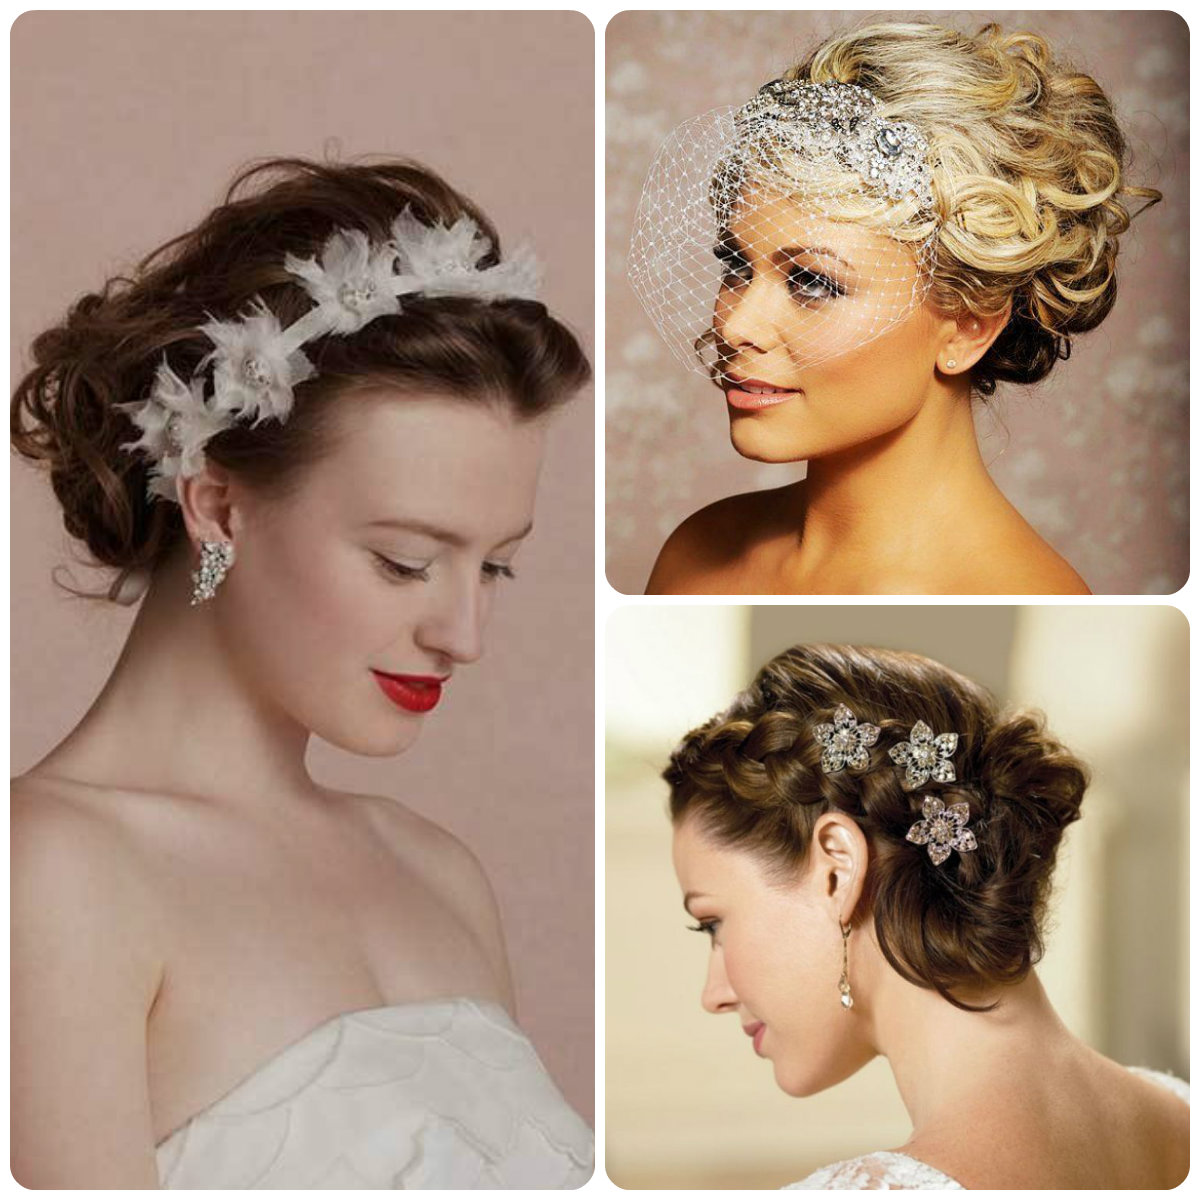 Elegant Updo Wedding Hairstyles Spring 2015